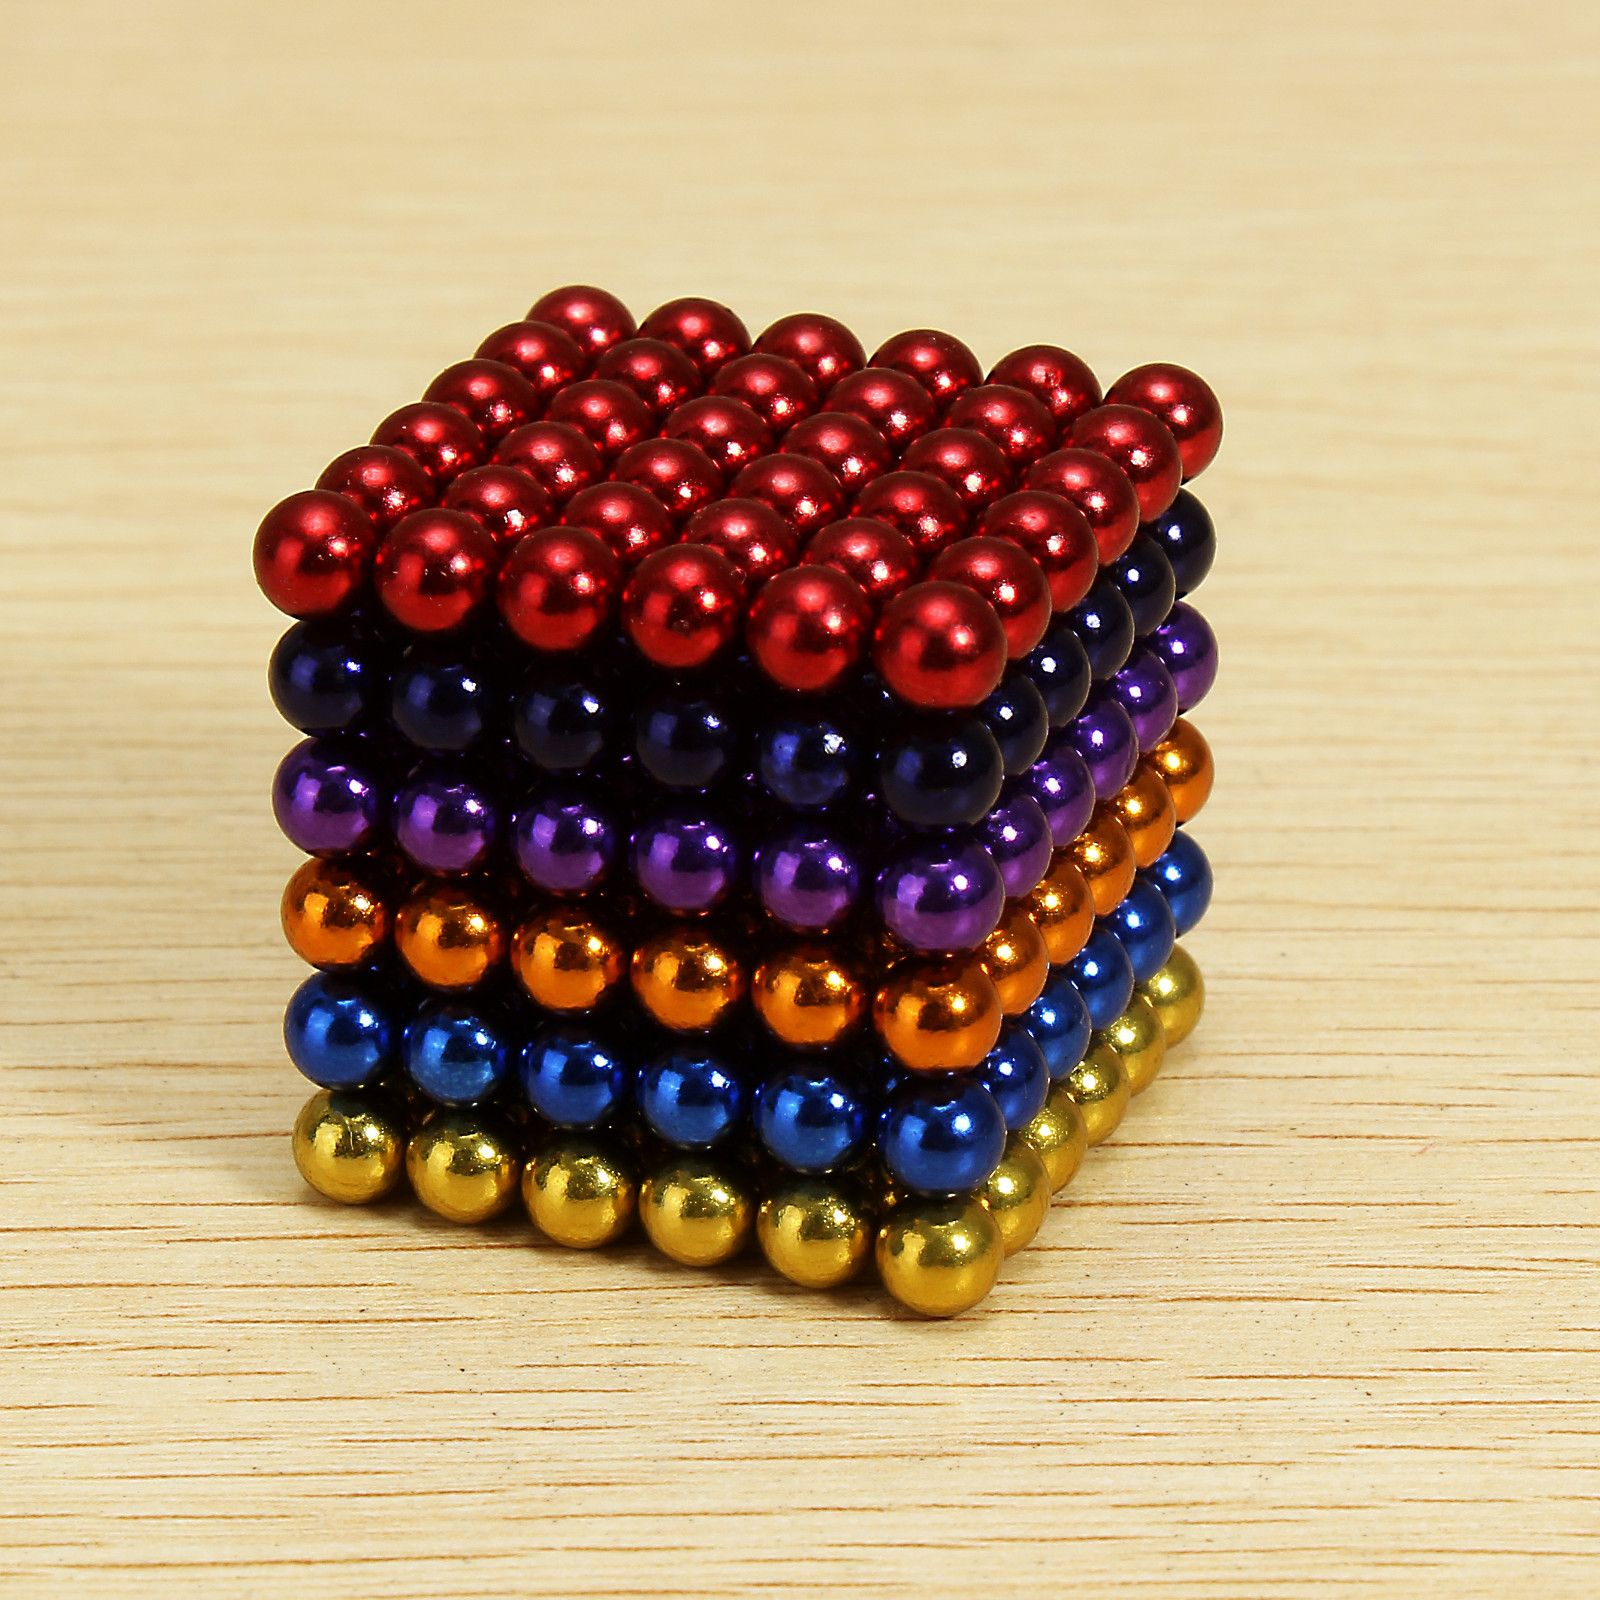 216Pcs 5mm Colorful DIY Neocube Magic Beads Magnetic Balls Puzzle 5mm magnetic ball puzzle novelty toy for diy 216pcs